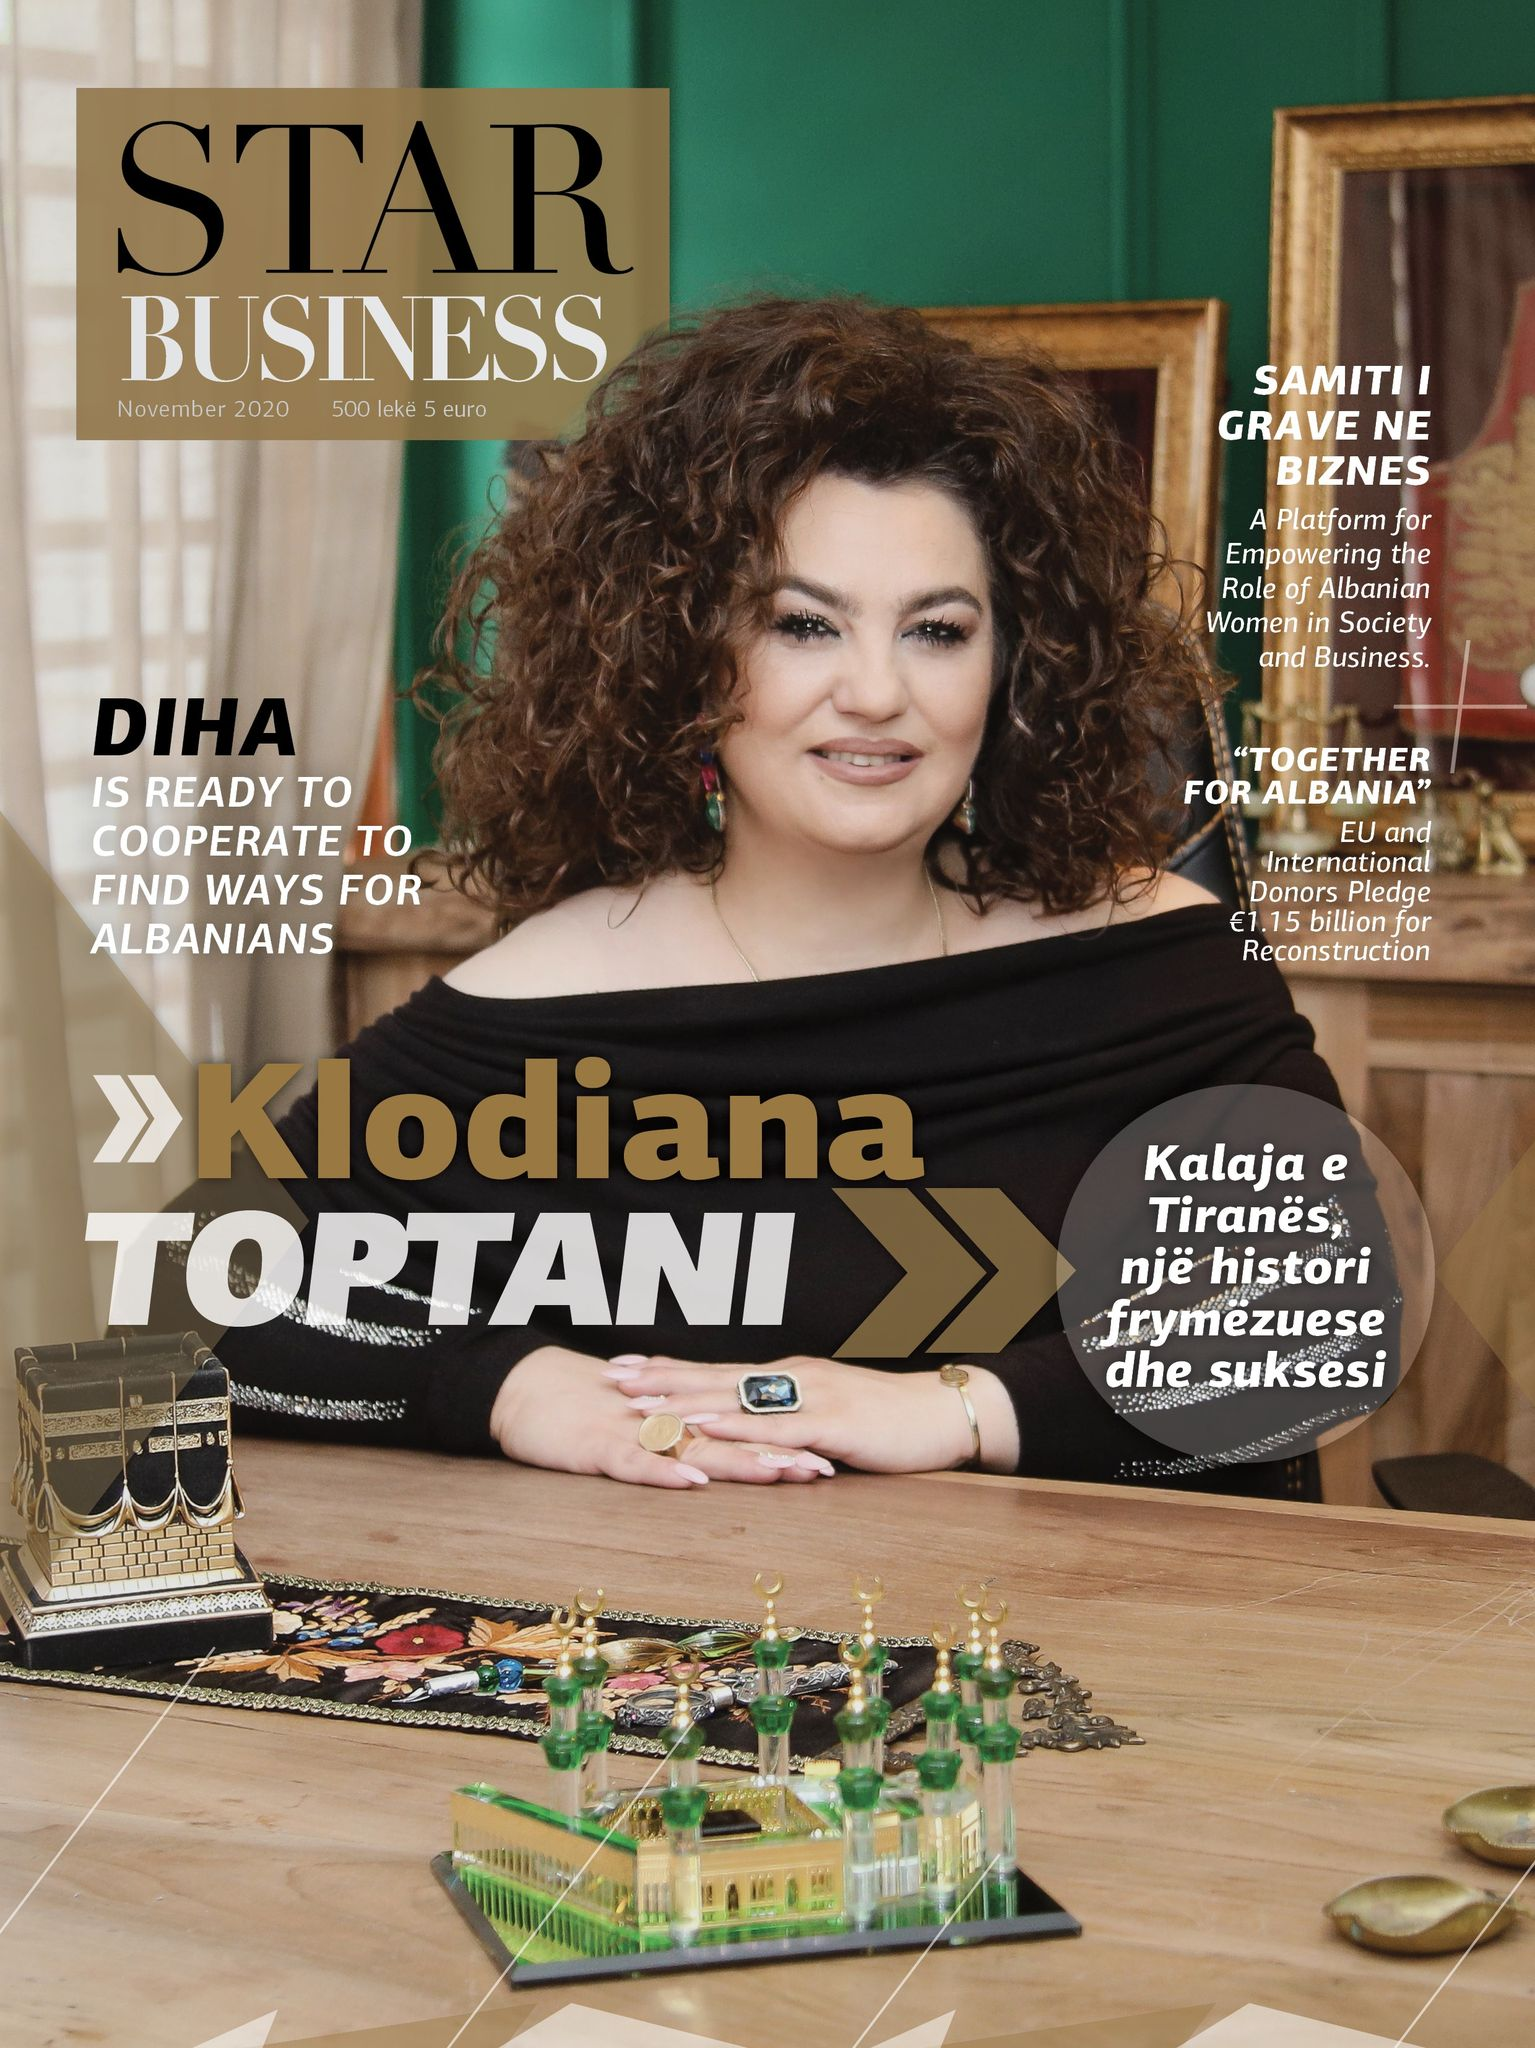 Klodiana Toptani - Tirana Castle, an inspiring and successful story 1